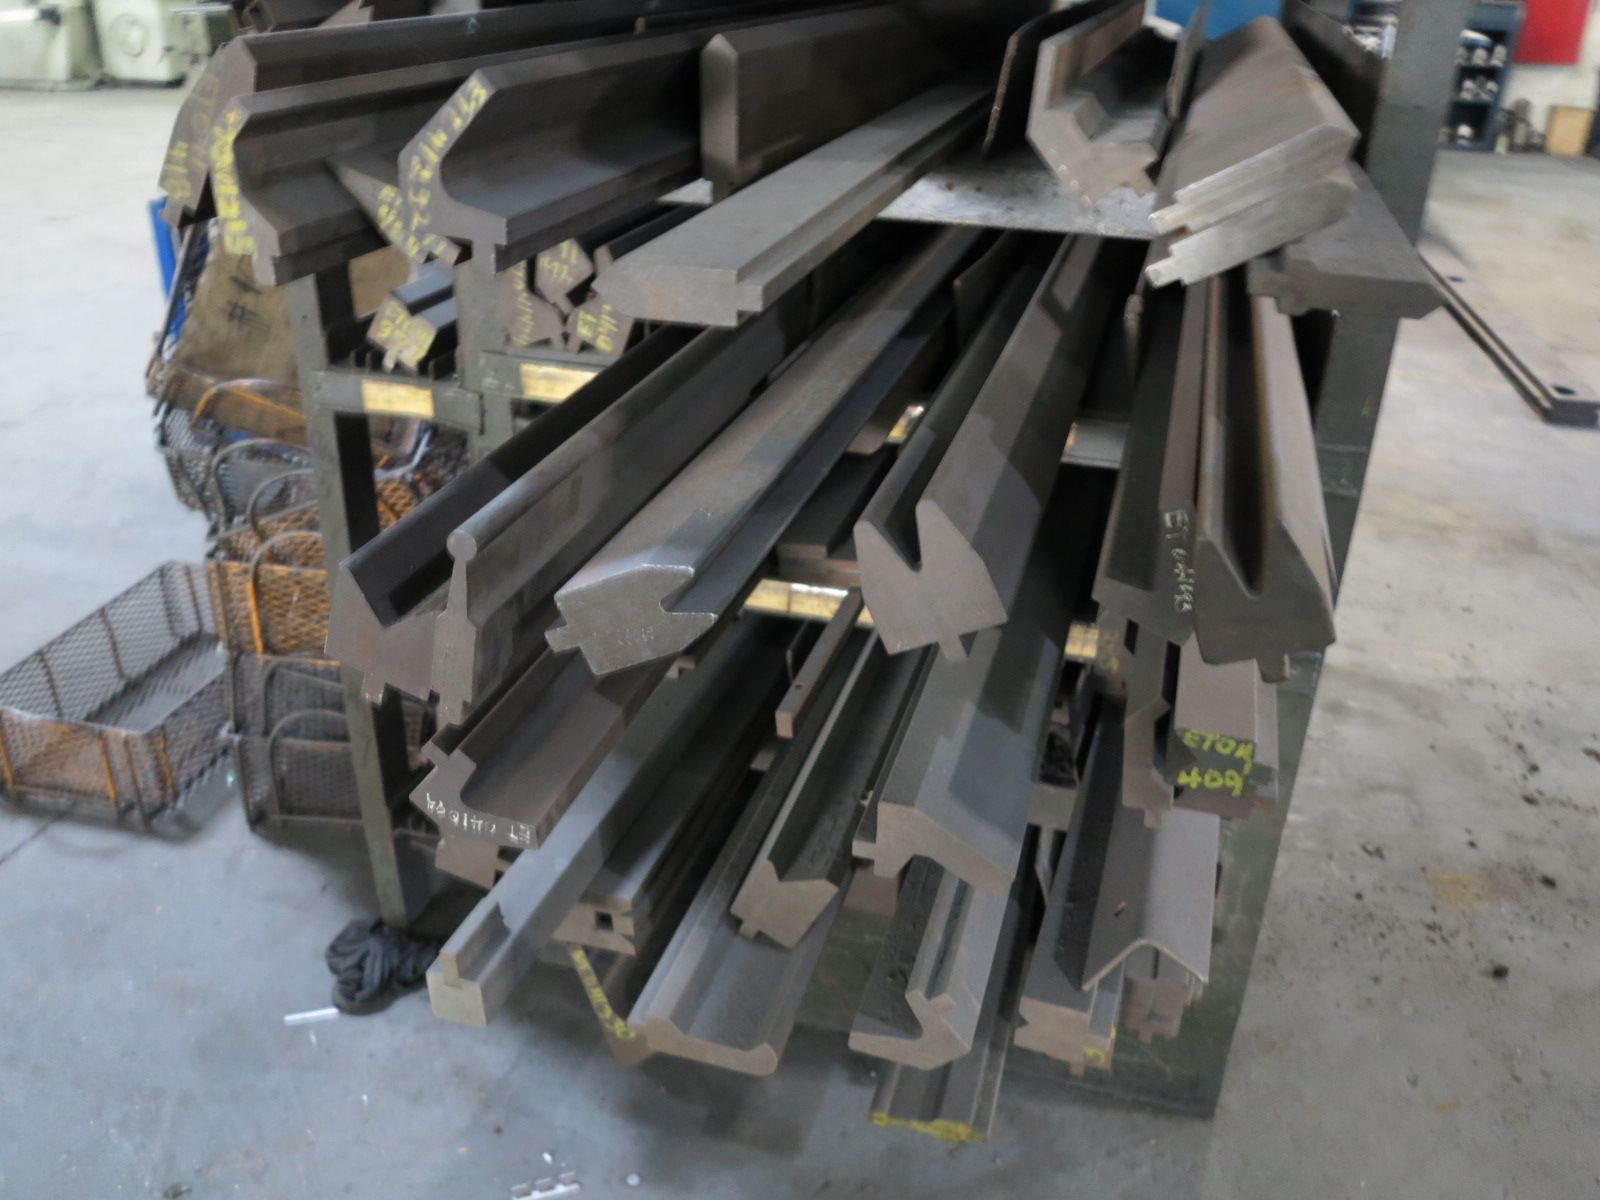 LOT - LARGE QUANTITY OF BRAKE DIES, RACK INCLUDED - Image 4 of 4